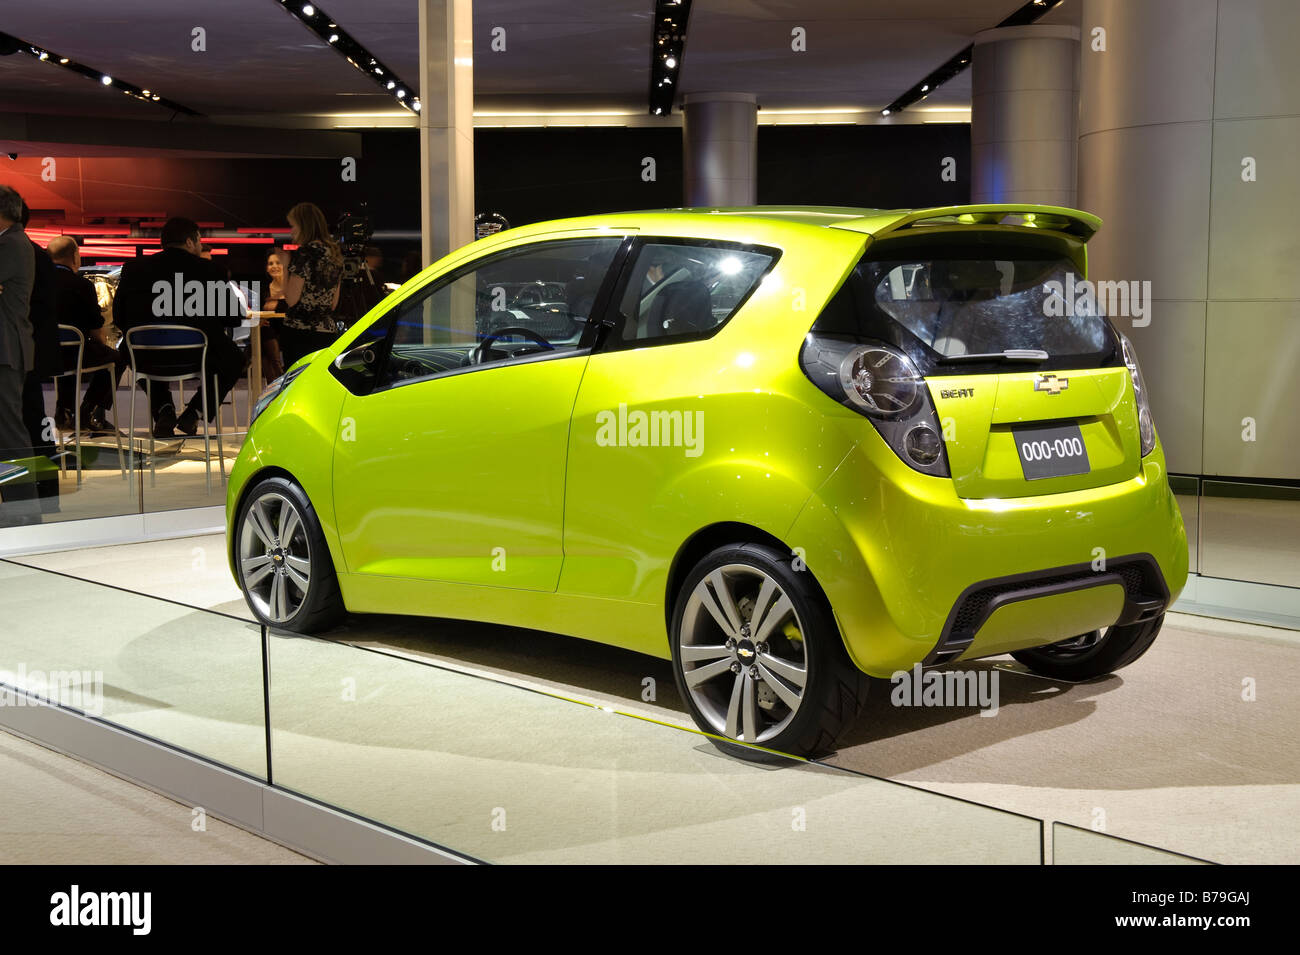 Chevrolet Spark Stock Photos  Chevrolet Spark Stock Images  Alamy